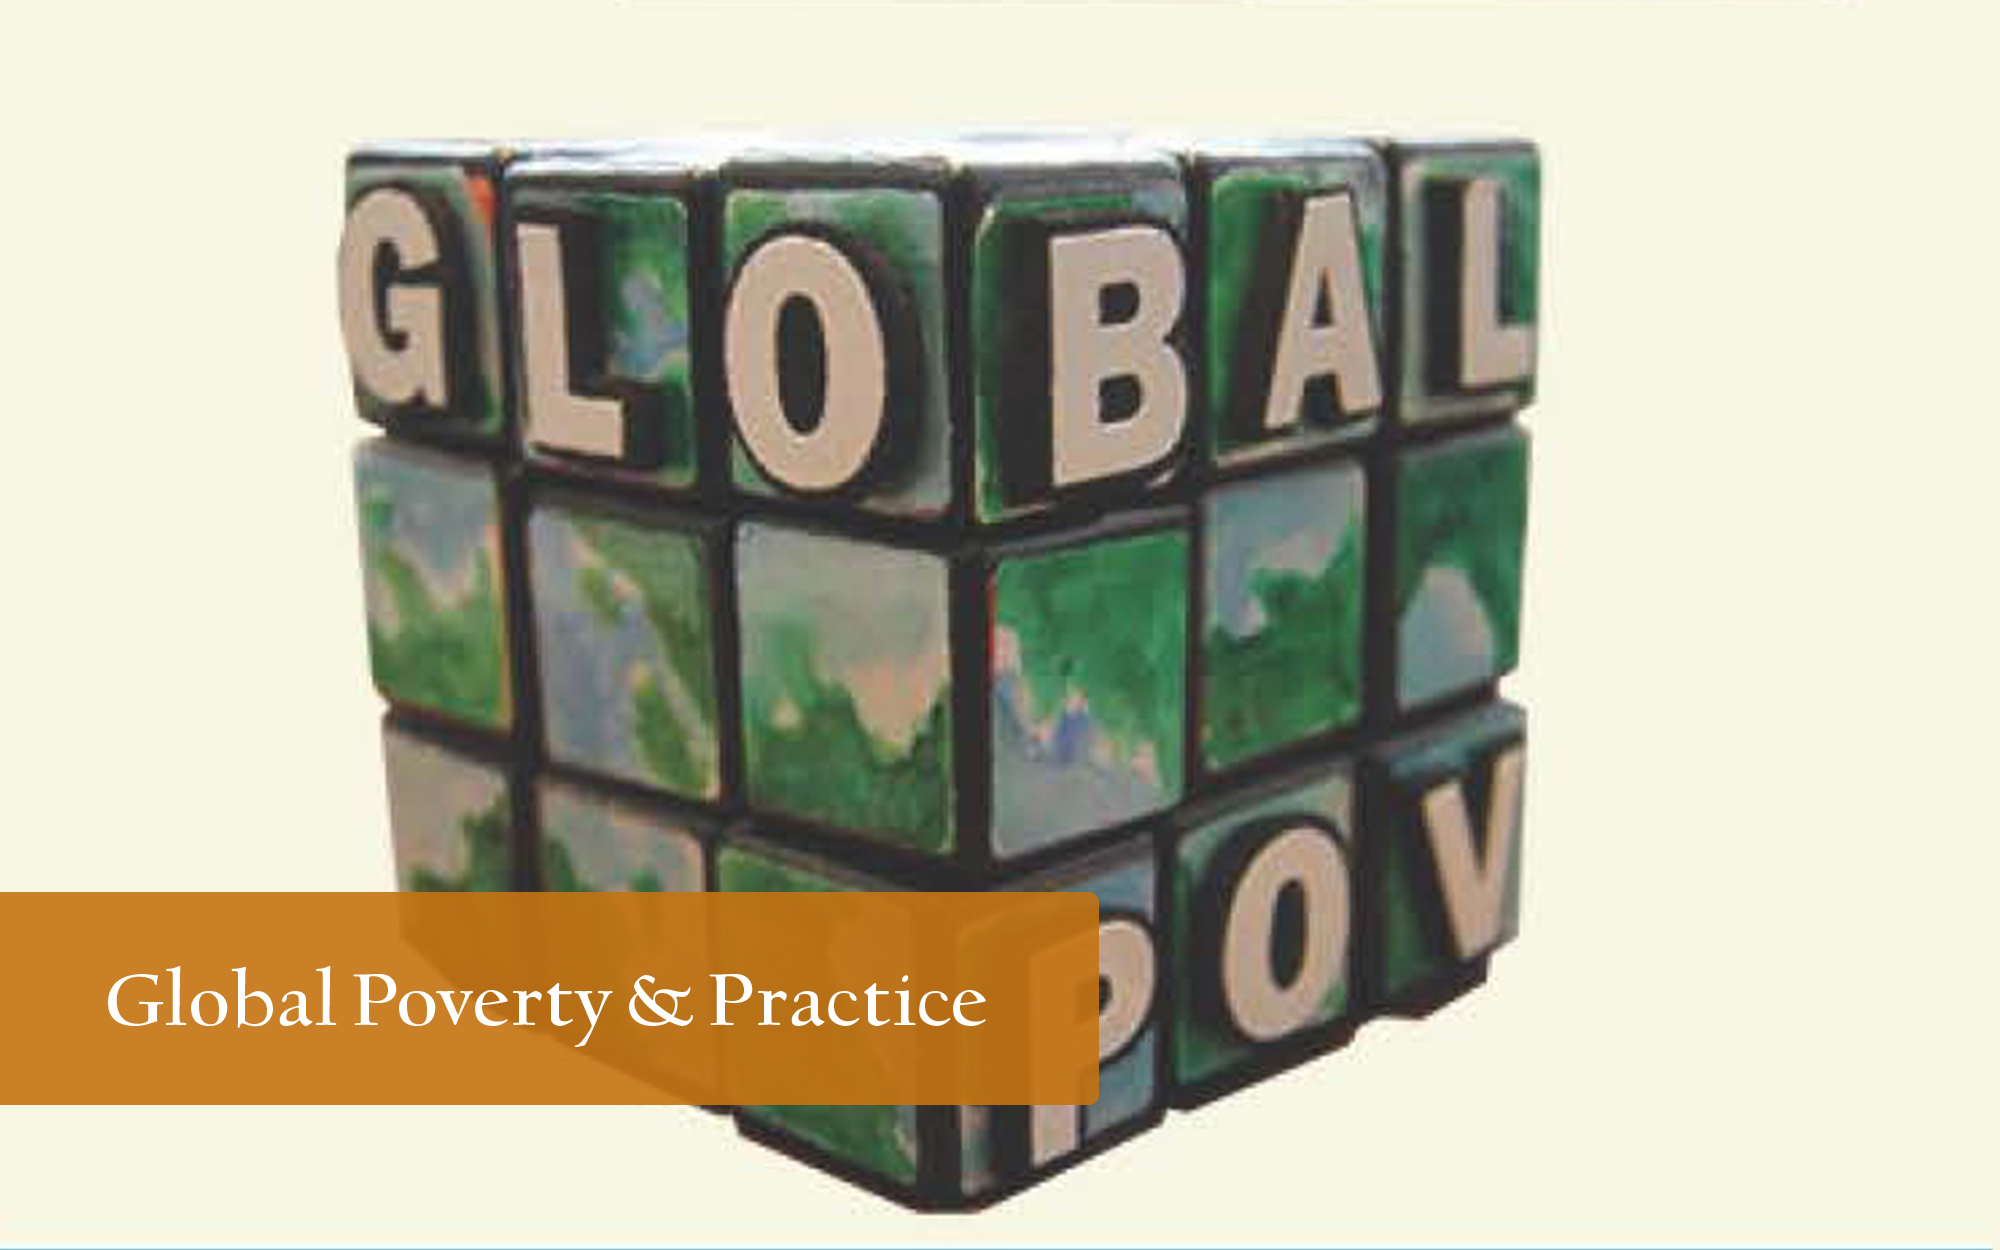 Global Poverty and Practice in form of unarranged rubix cube